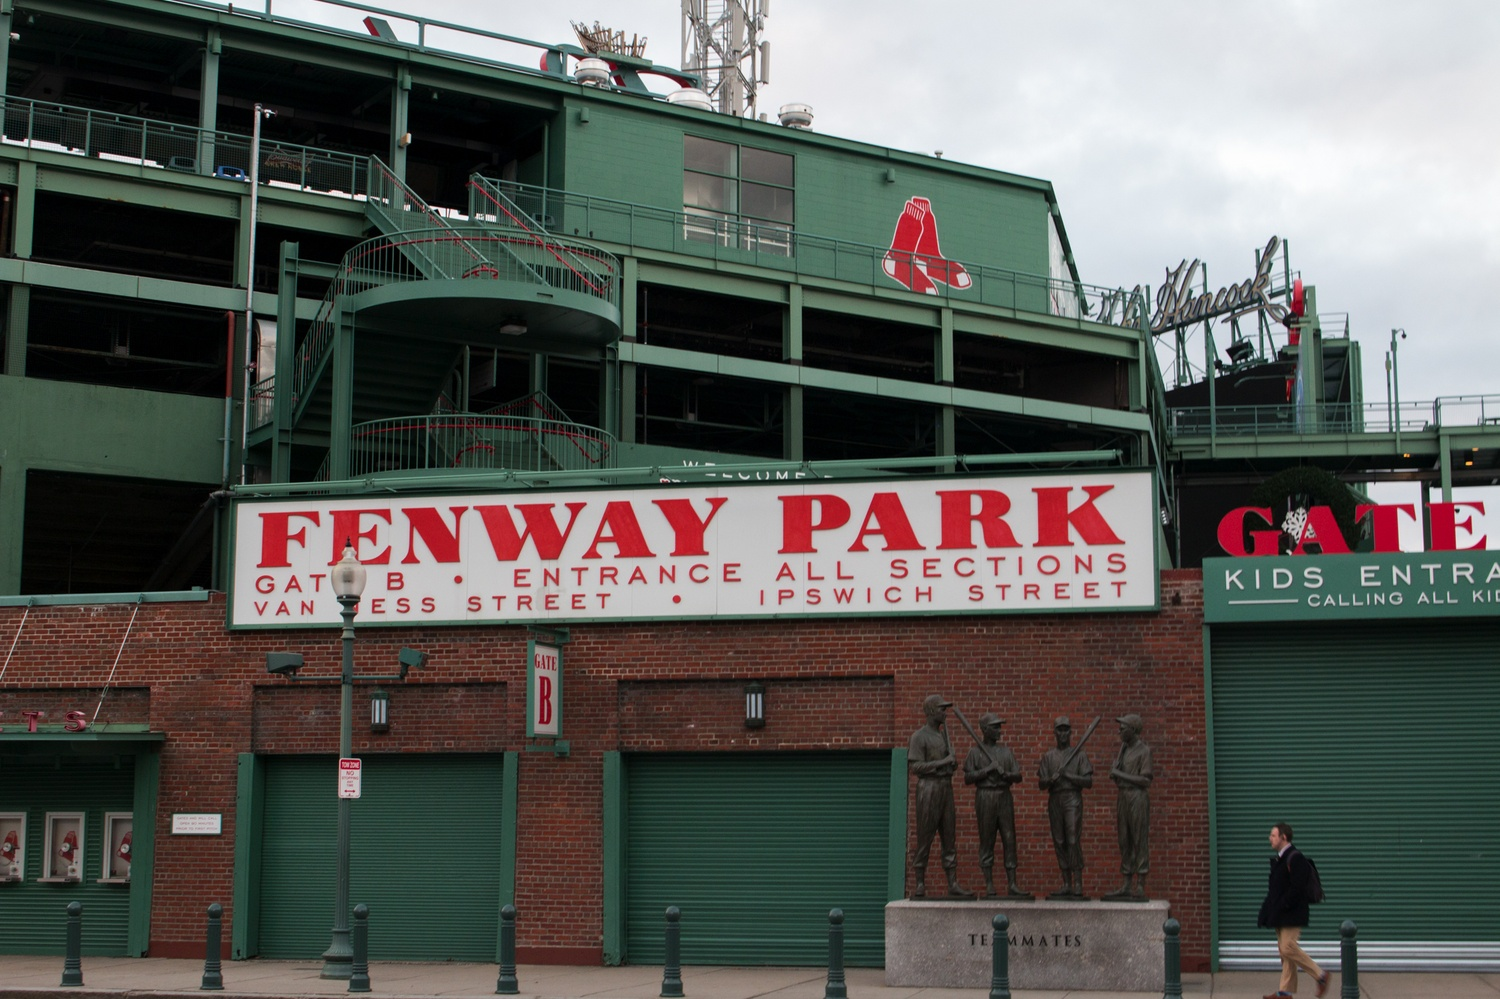 Fenway Park, home of the Boston Red Sox, will host the 135th Harvard-Yale Game this year.